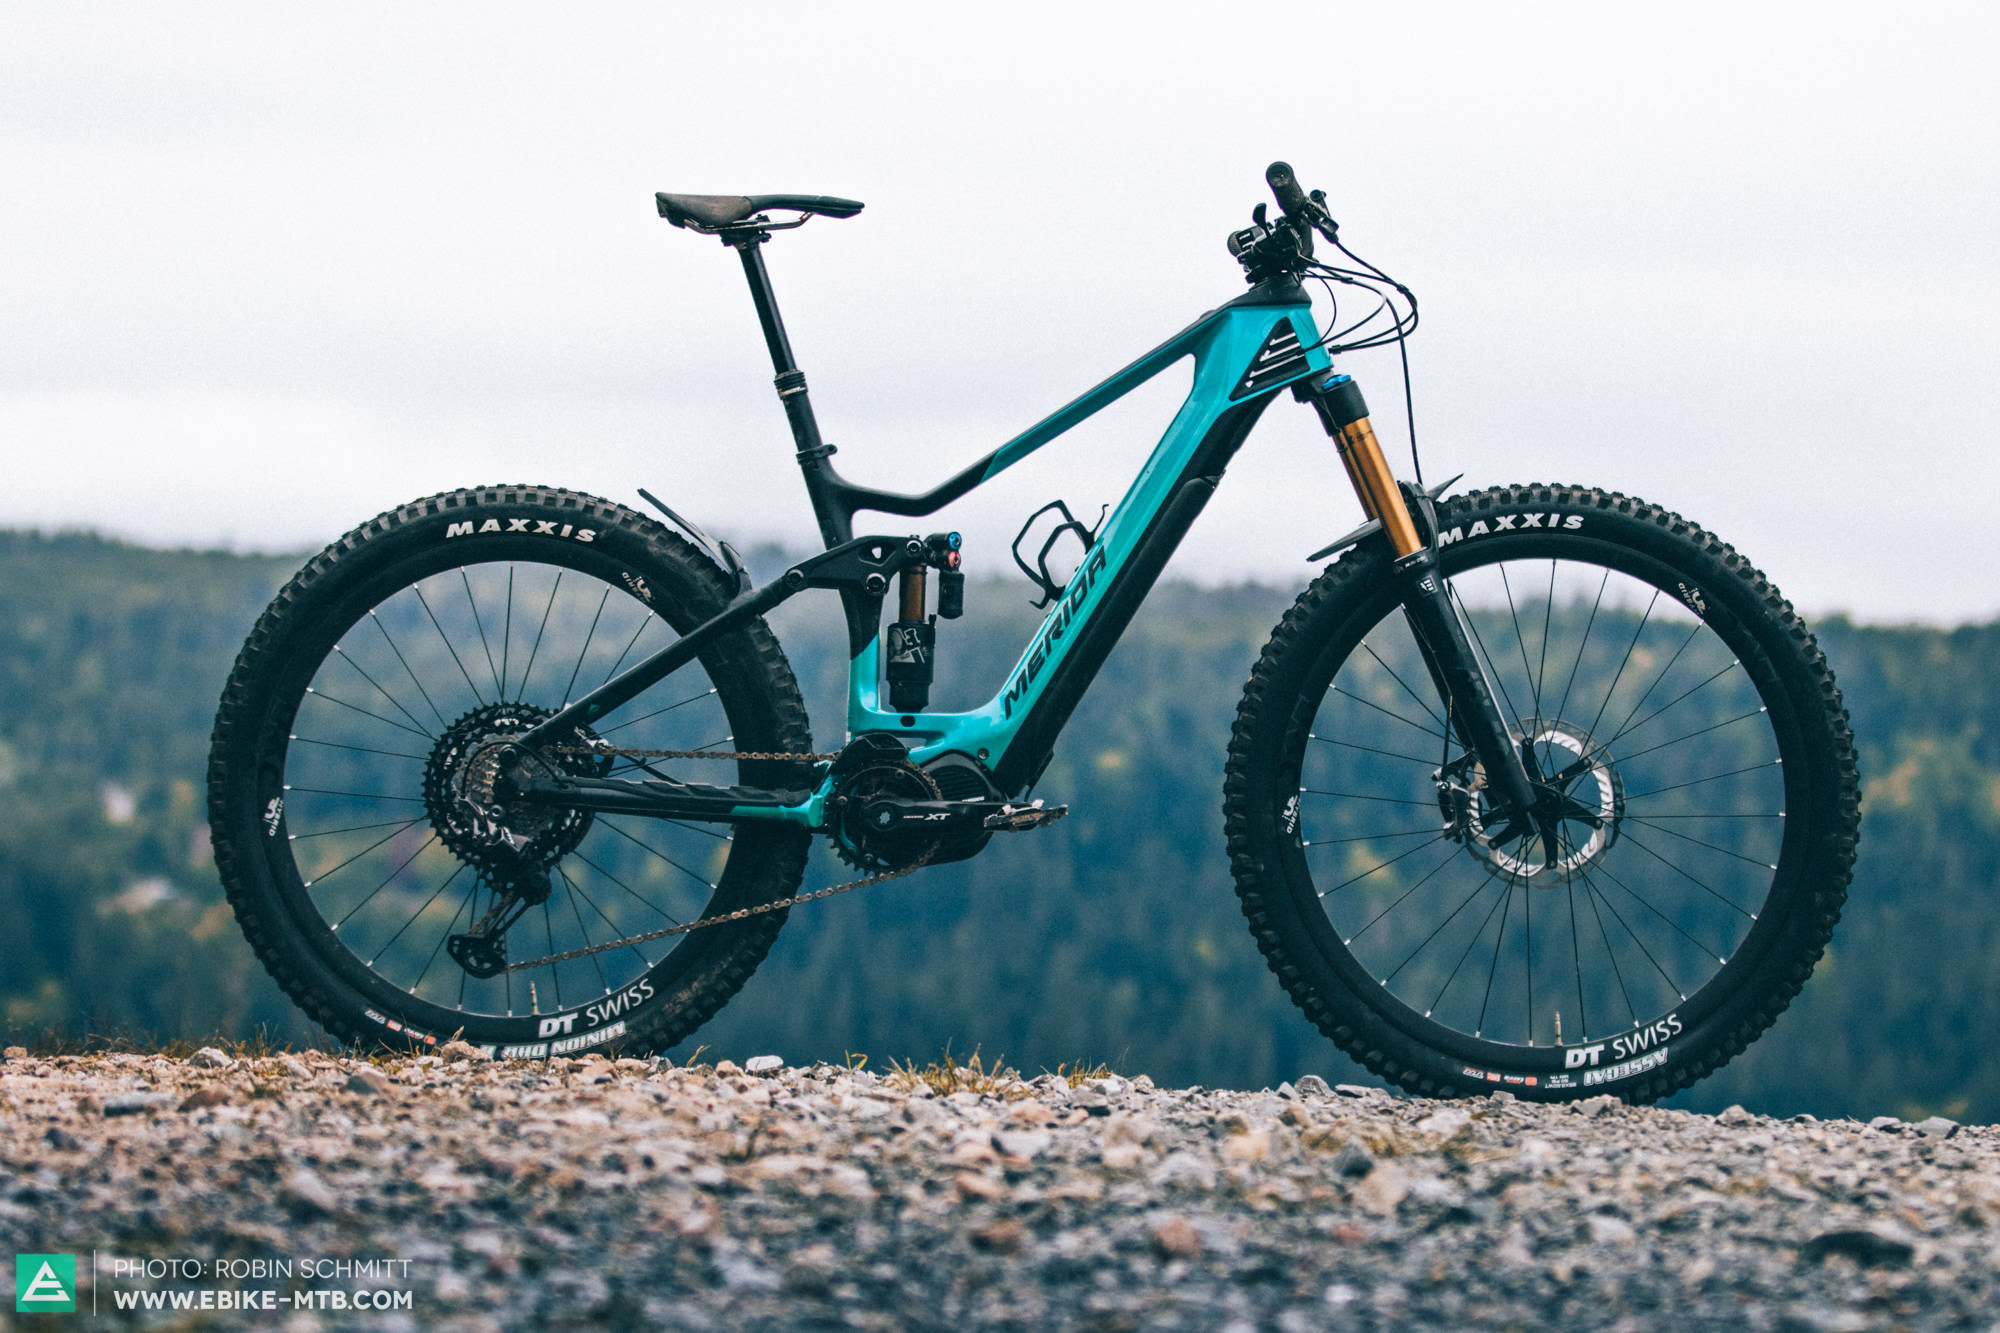 Best Ebike 2020 Exclusive review: MERIDA eONE SIXTY 10K 2020 – the new benchmark